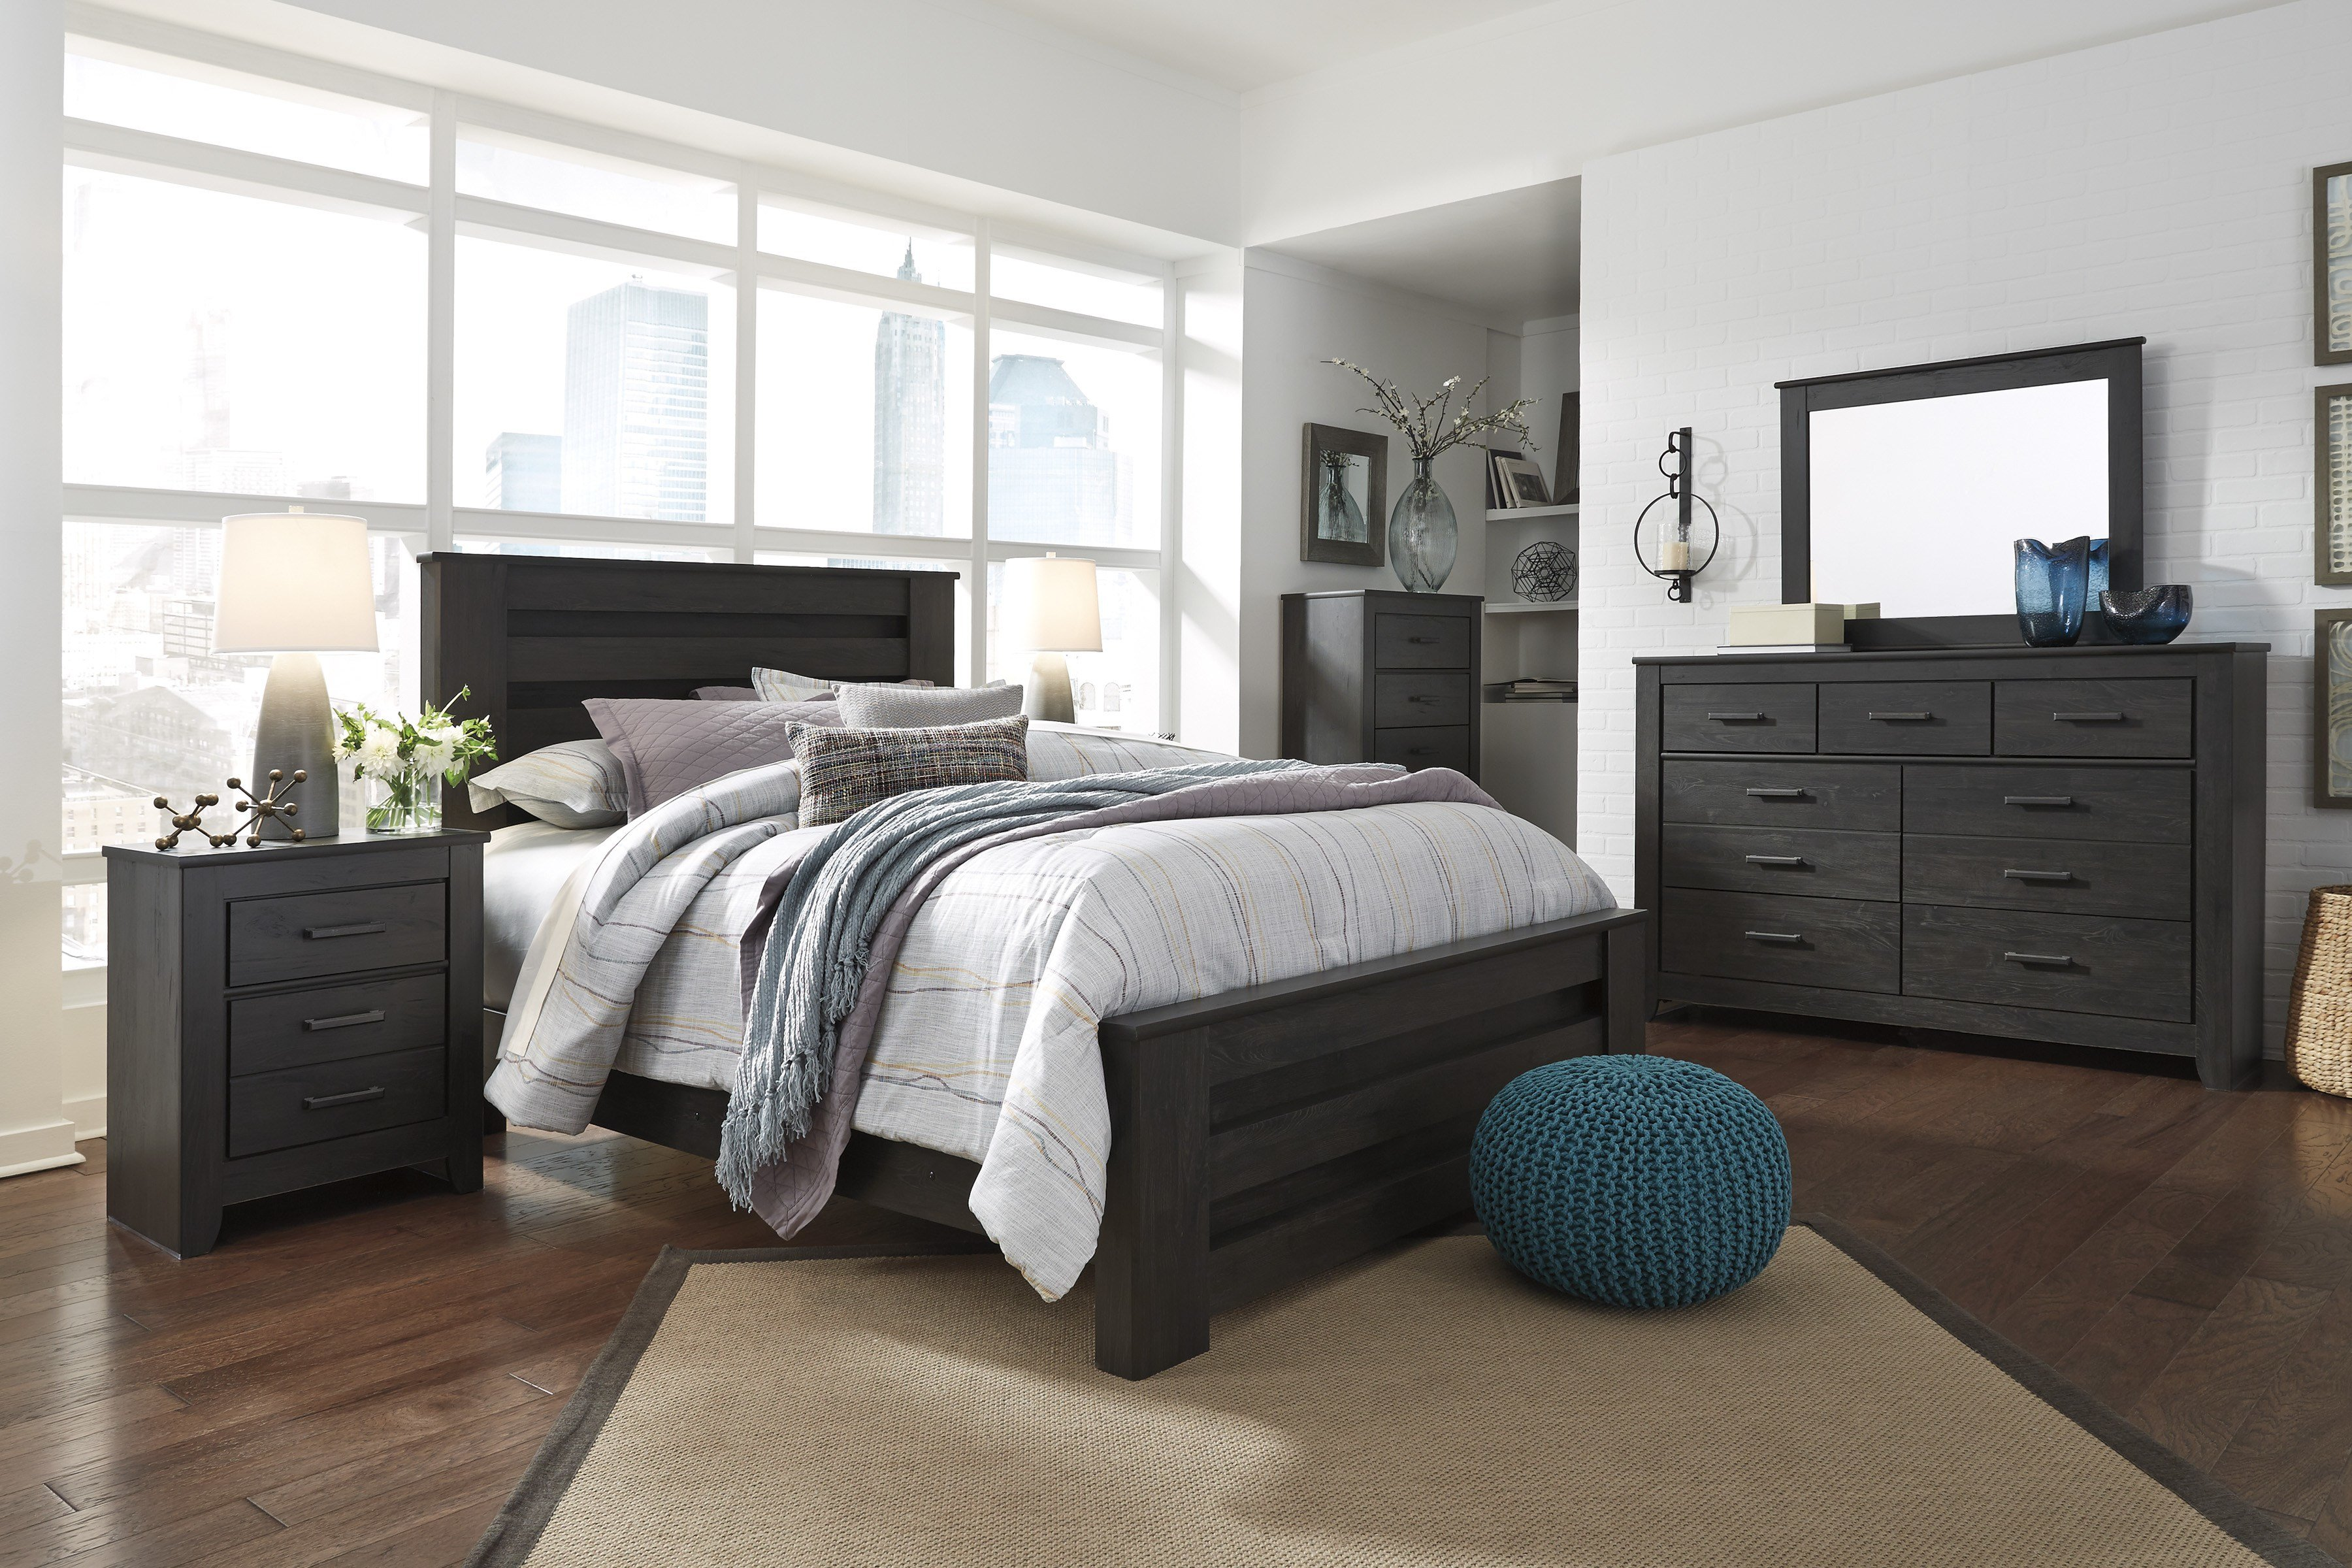 Best Brinxton 6 Piece Bedroom Set – Best Deal Furniture With Pictures